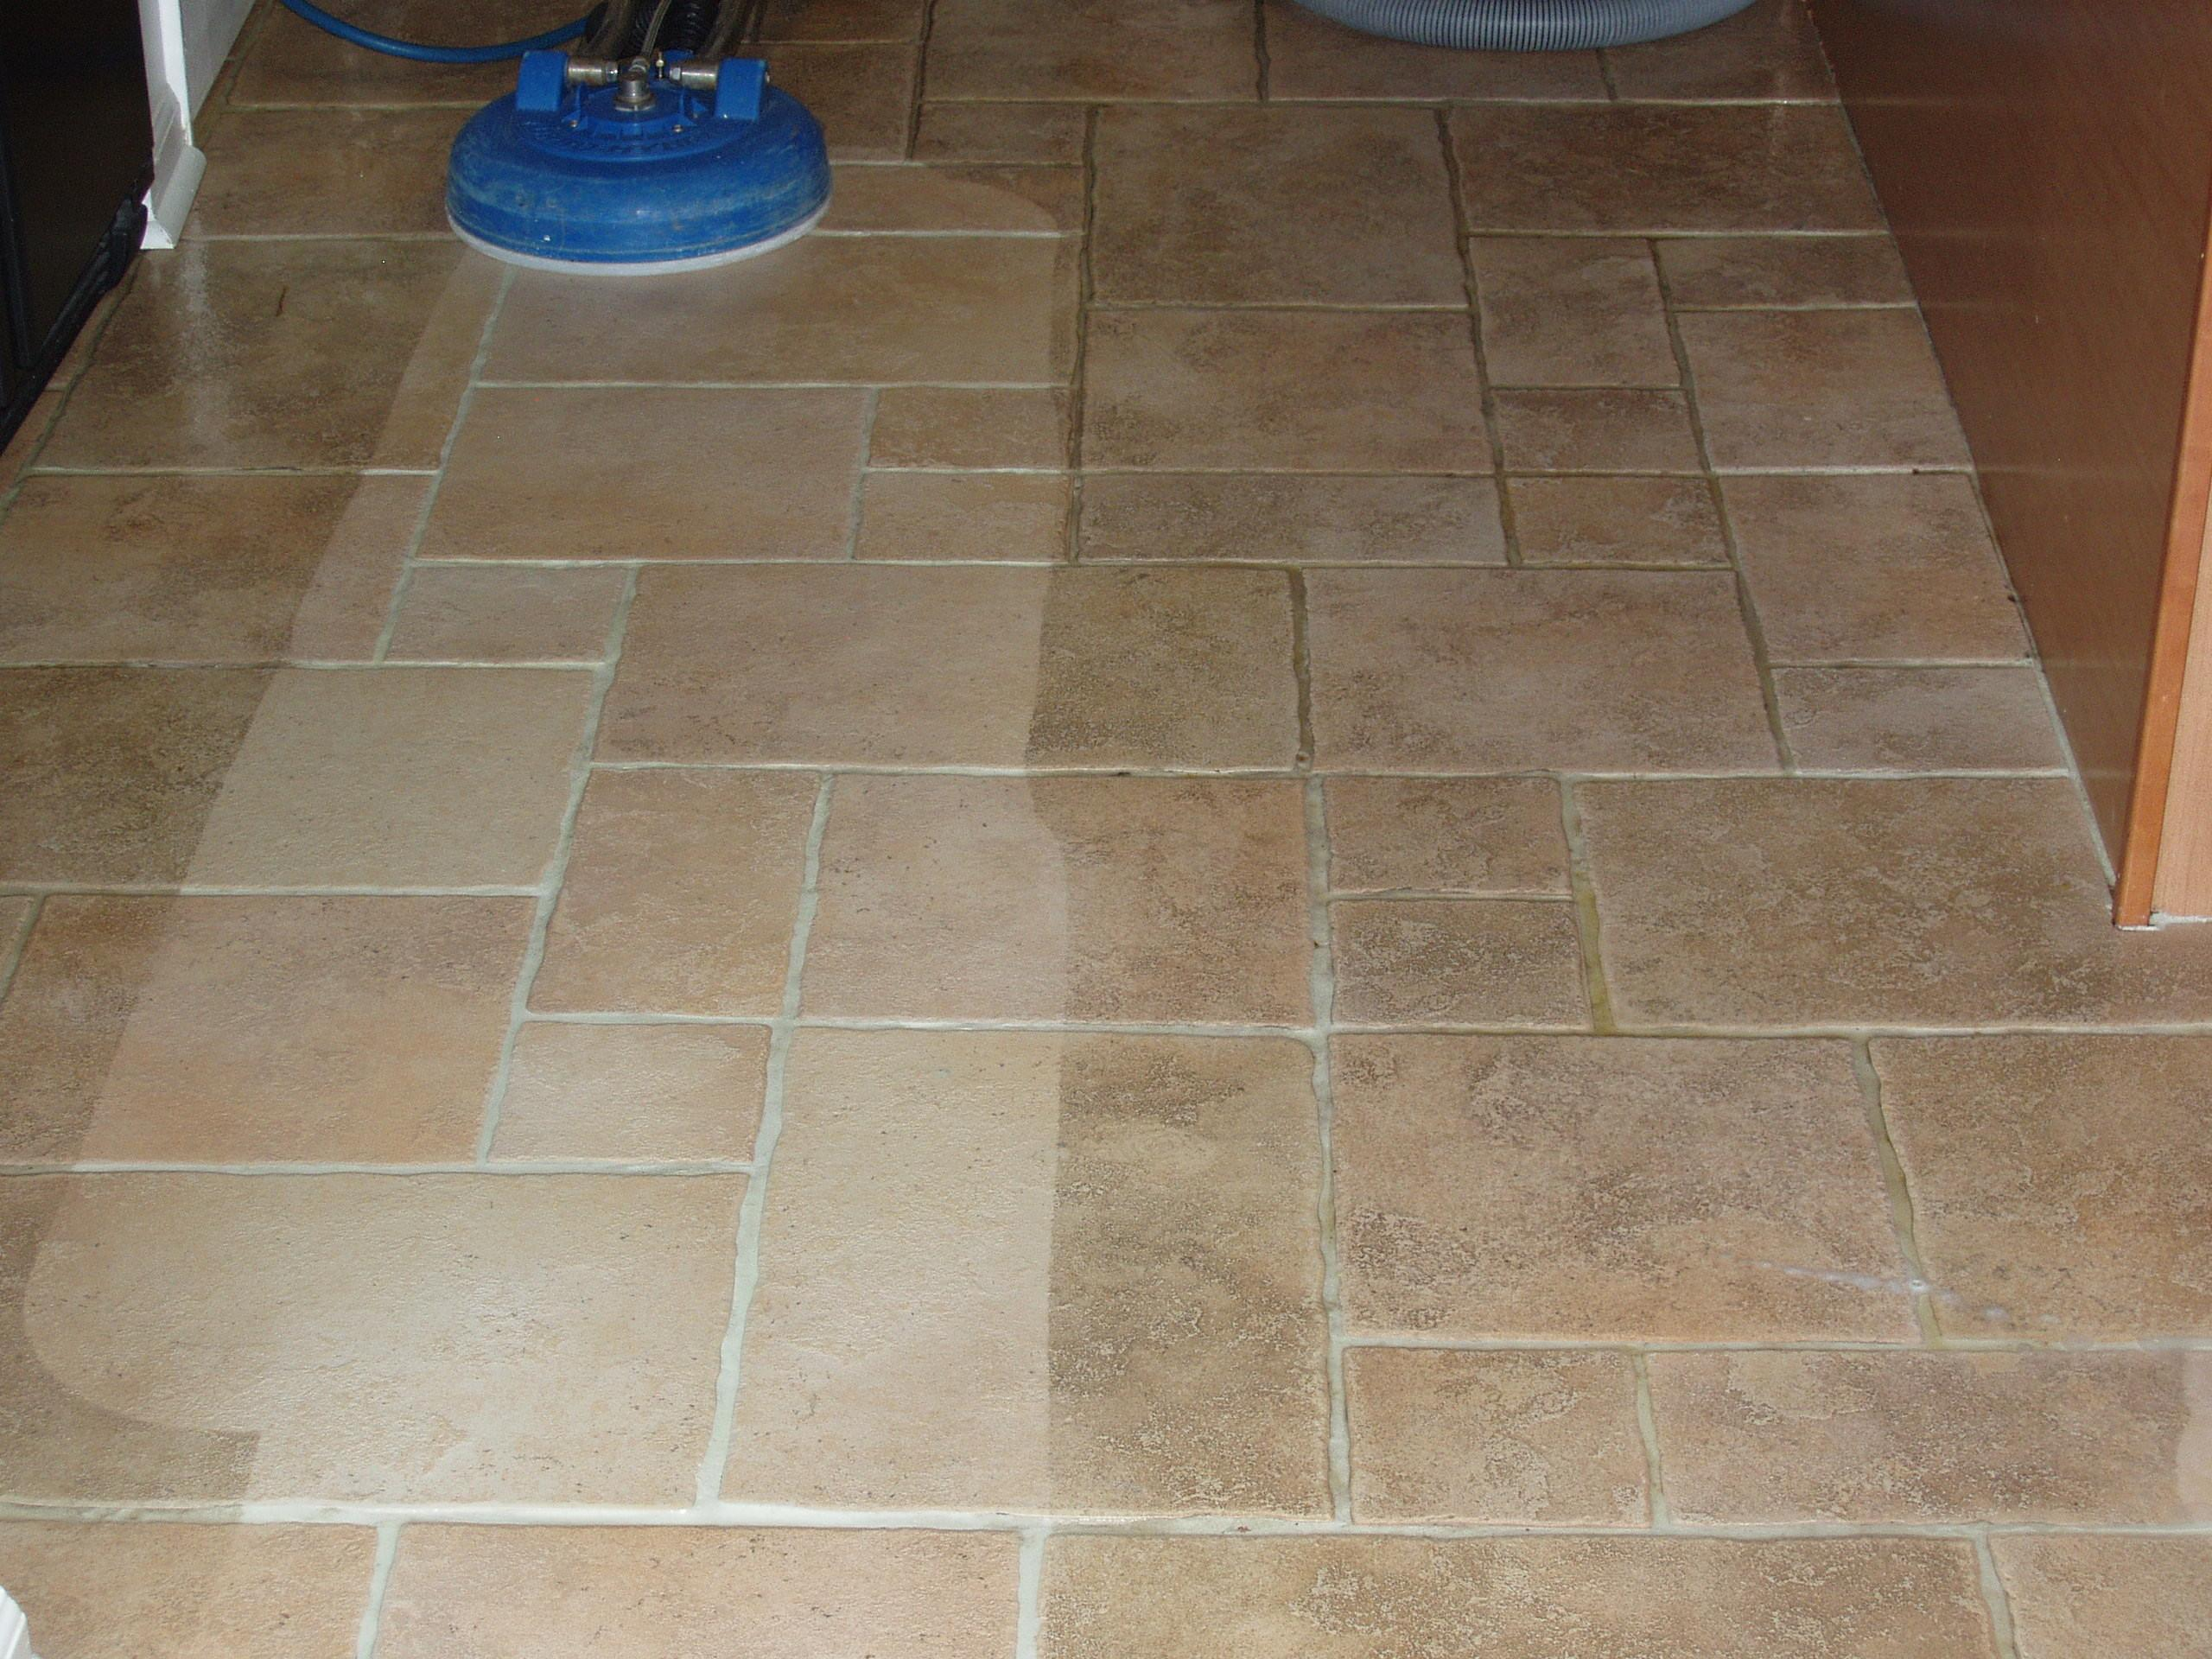 Clean Tile After Grouting Design Ideas